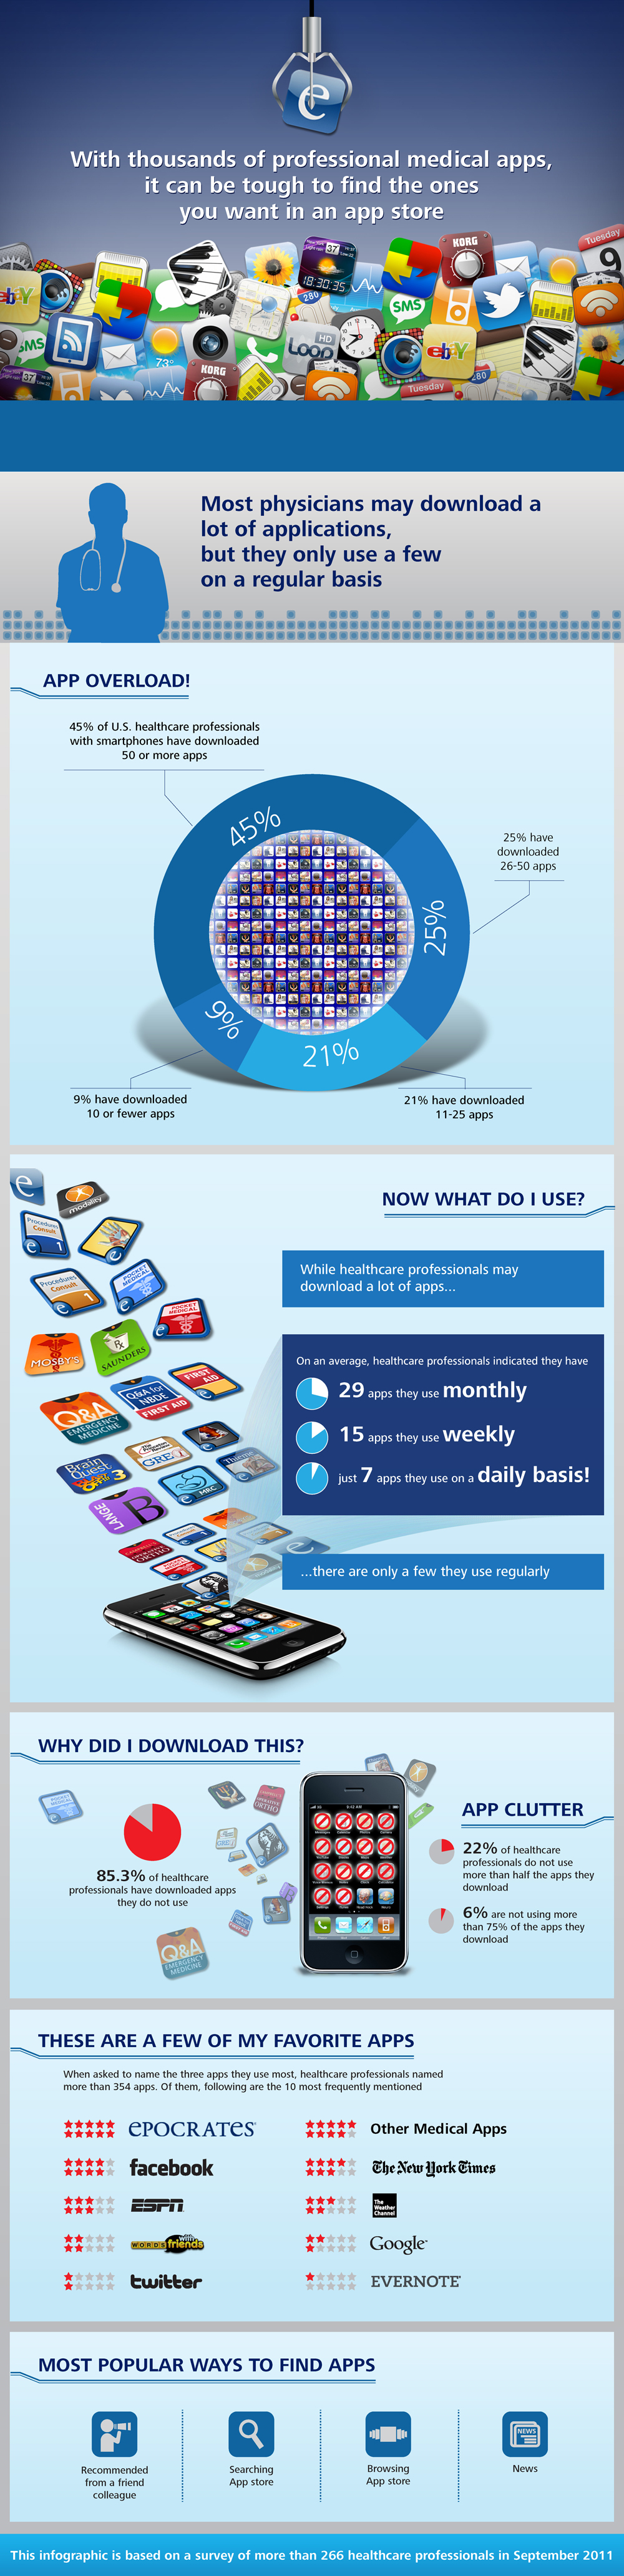 App Overload for Doctors infographic